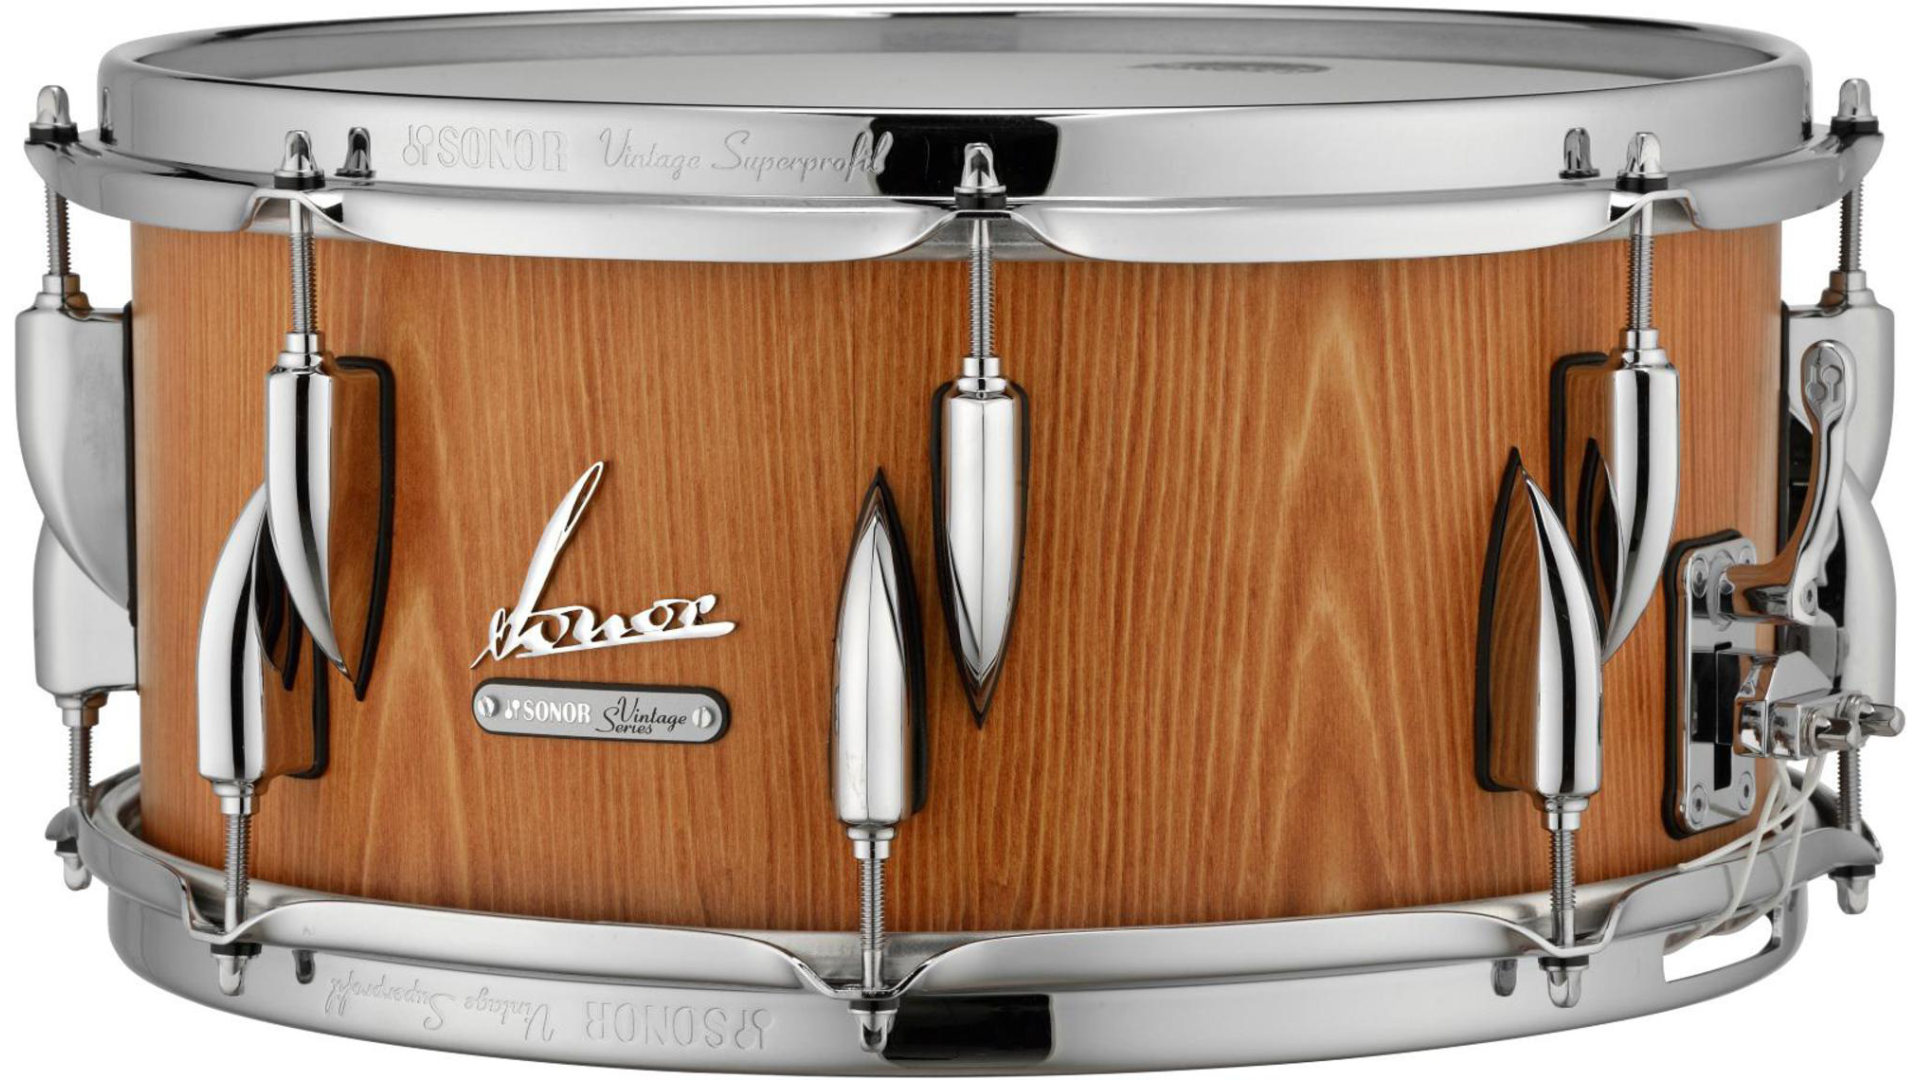 Sonor Vintage Series Snare Drum 14 x 6.5 in. Vintage Natural